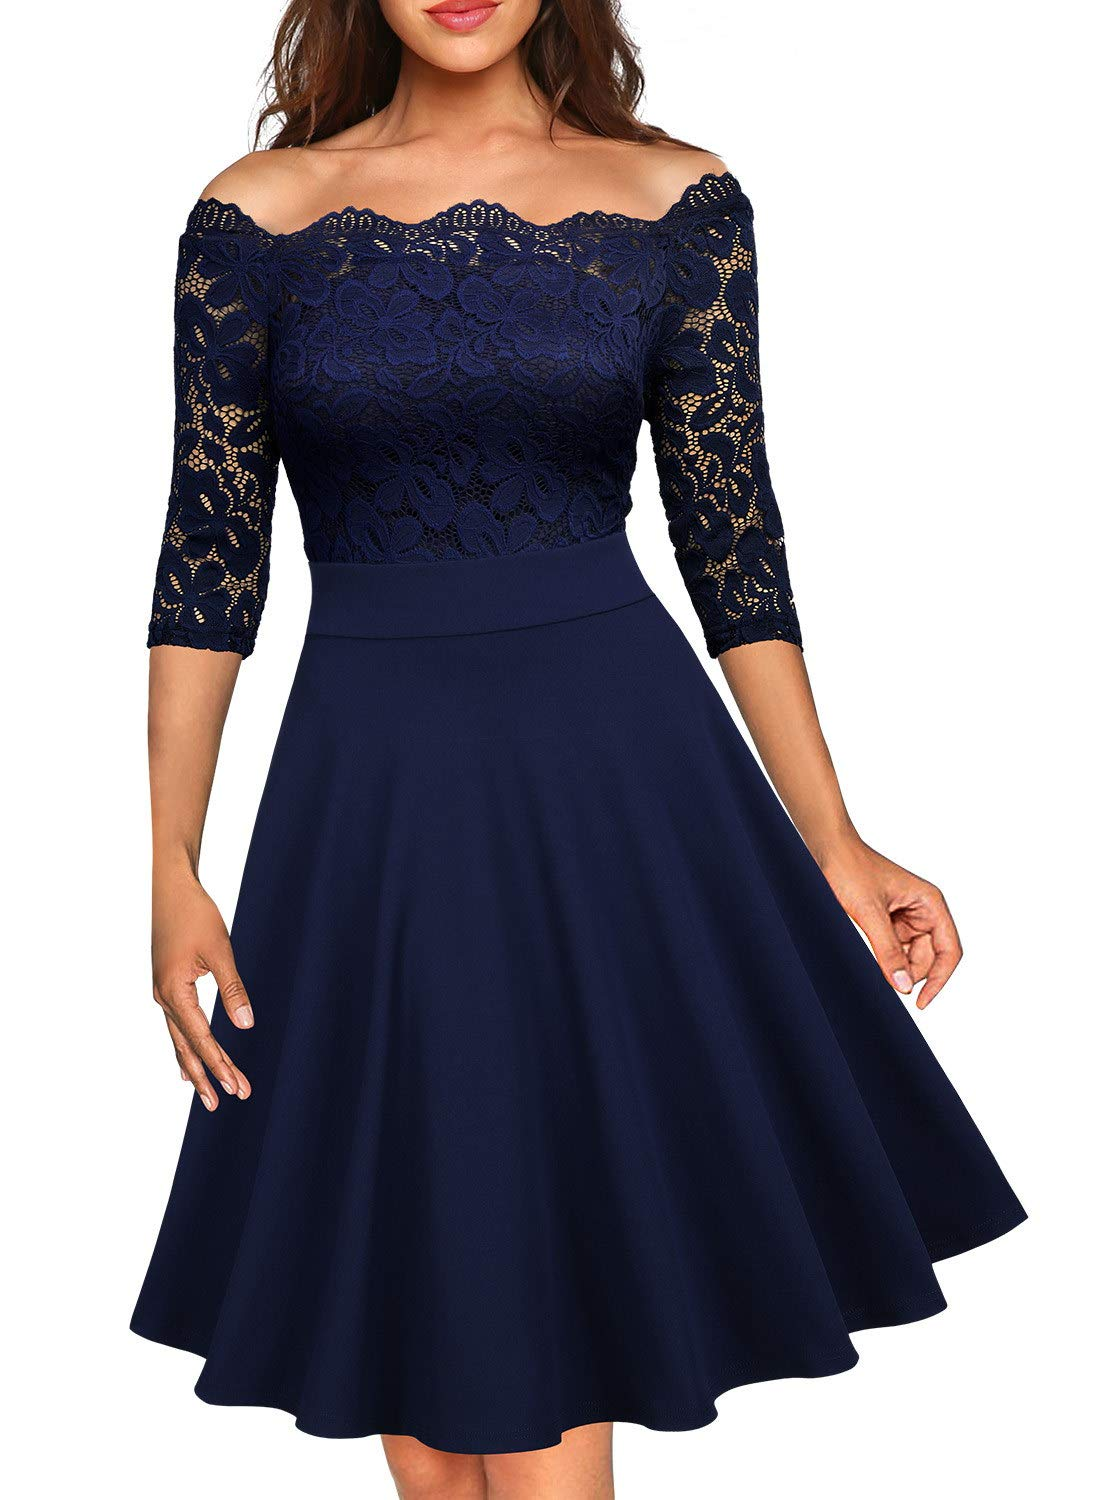 717e1793db87 MISSMAY Women's Vintage Floral Lace Half Sleeve Boat Neck Cocktail Formal Swing  Dress Navy Blue